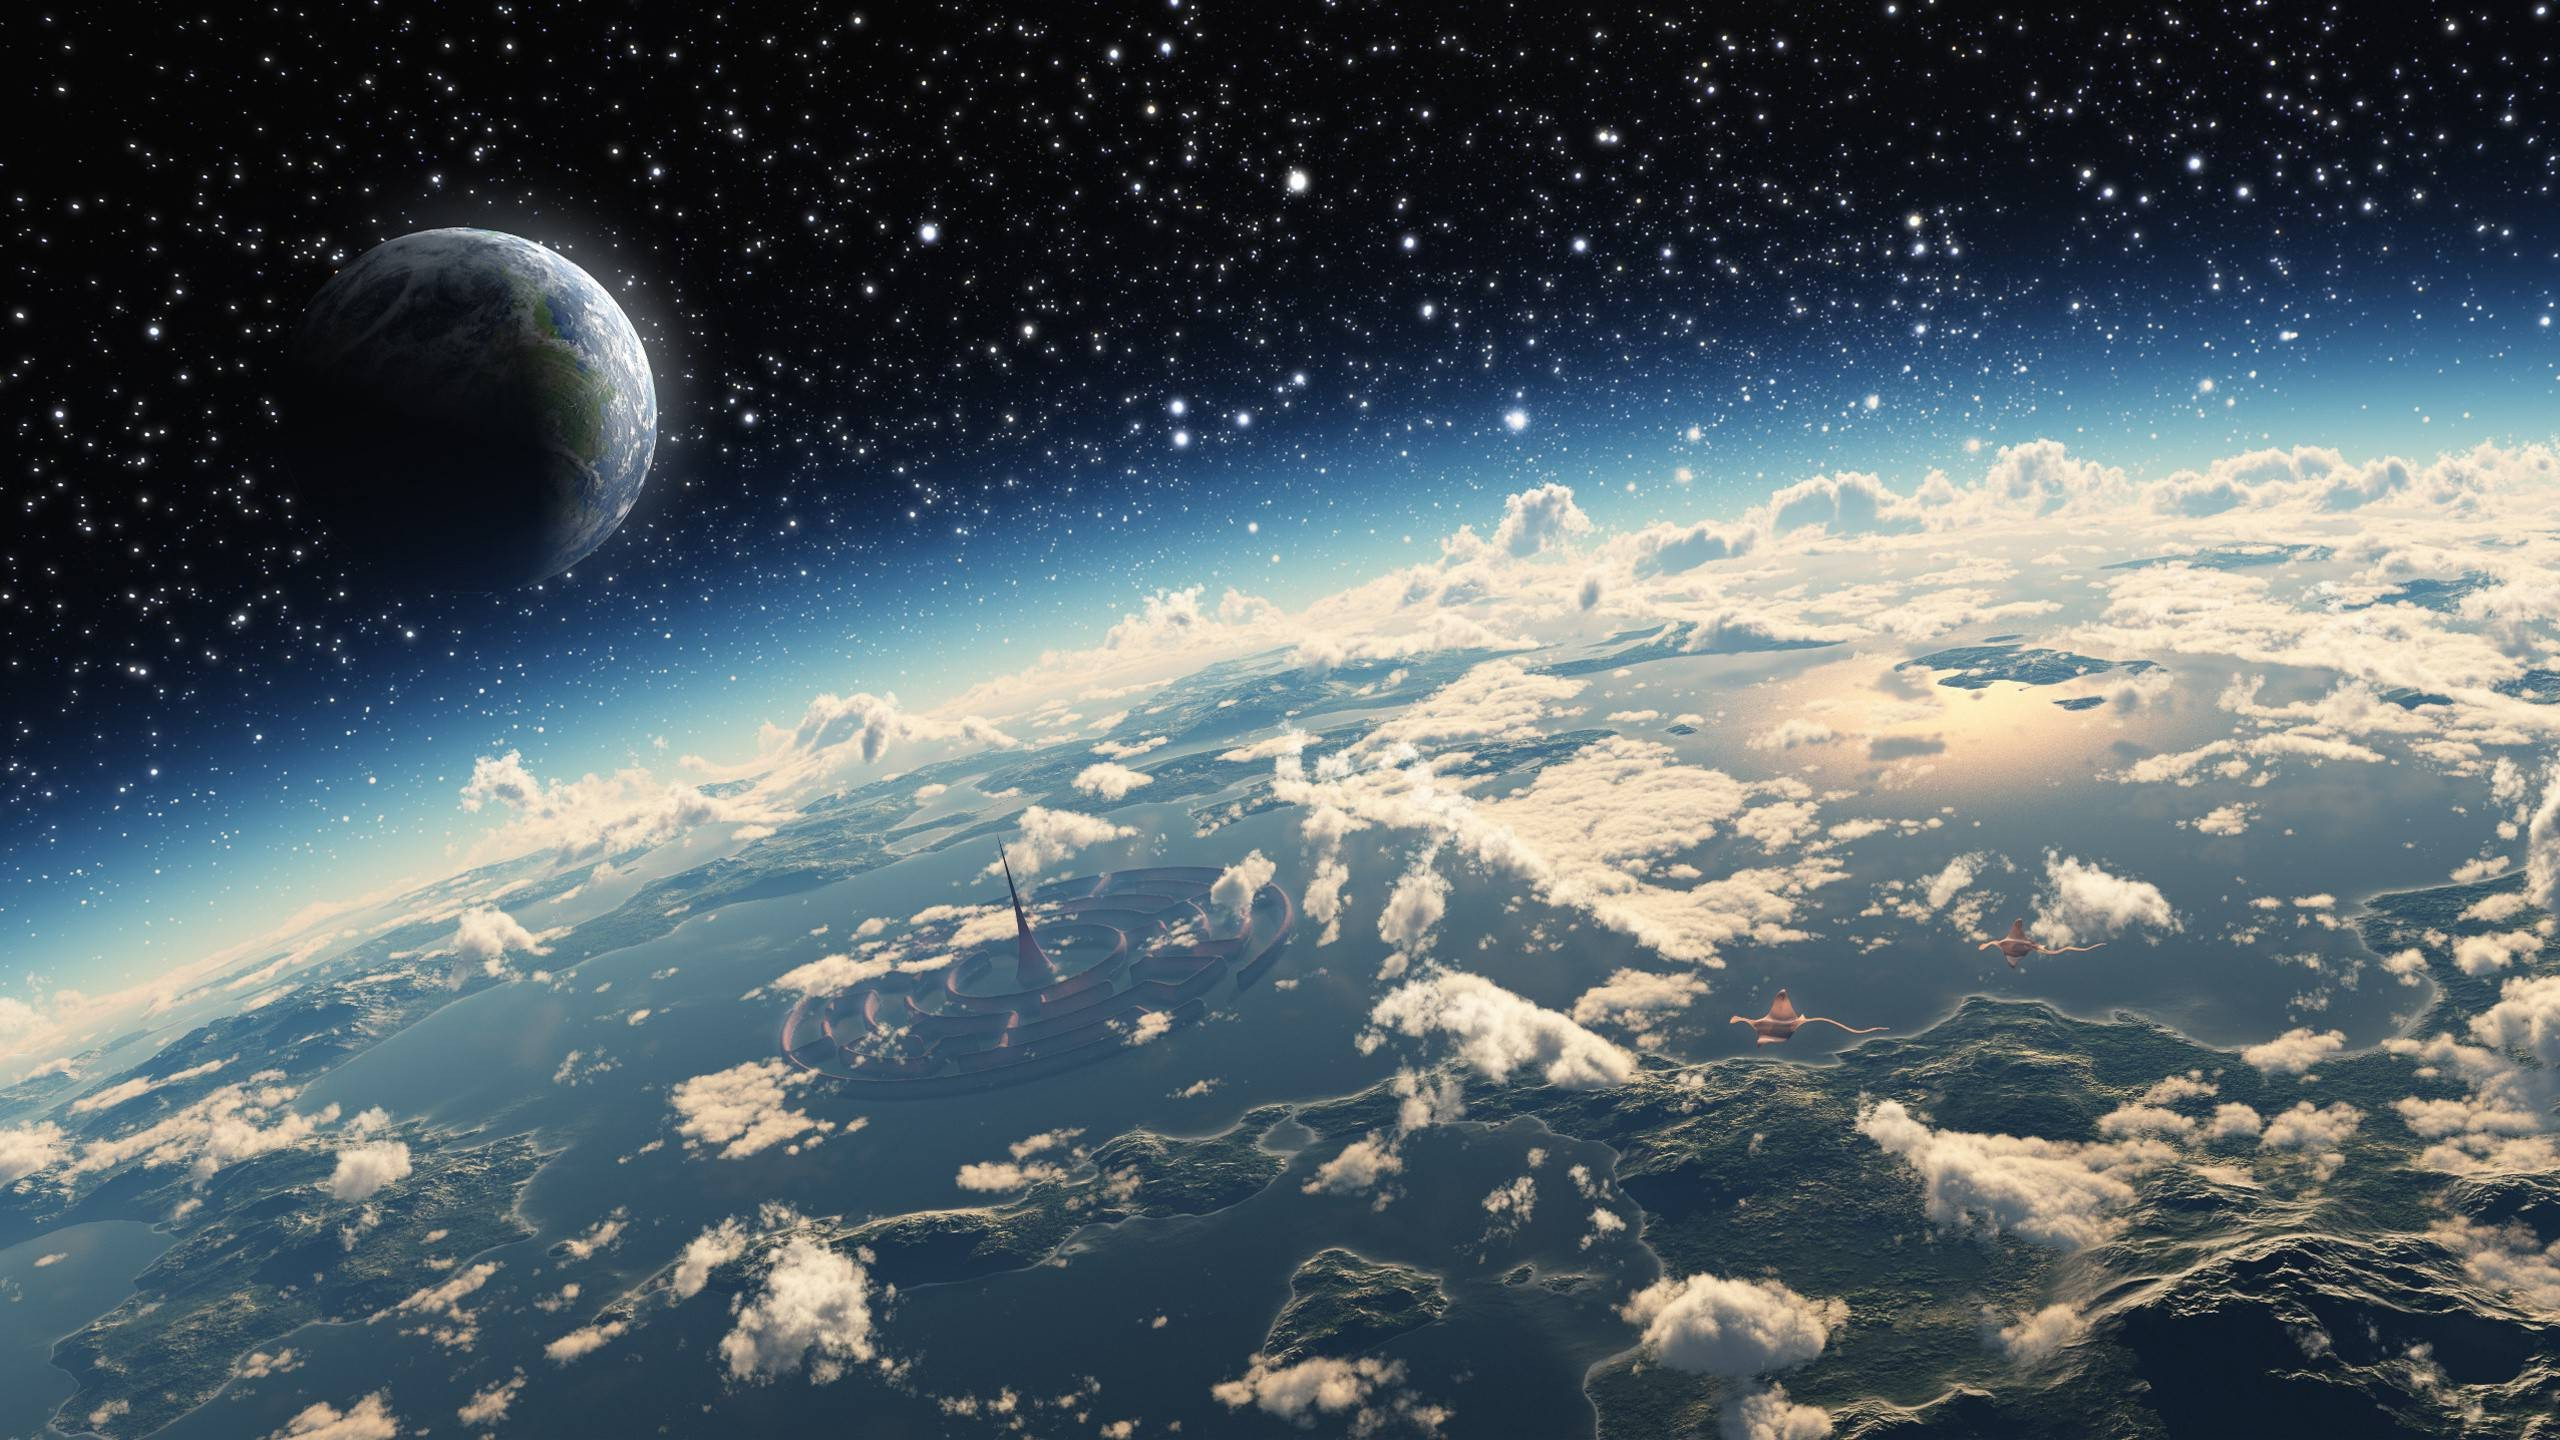 Stars Space Art Planet Clouds Atmosphere Science